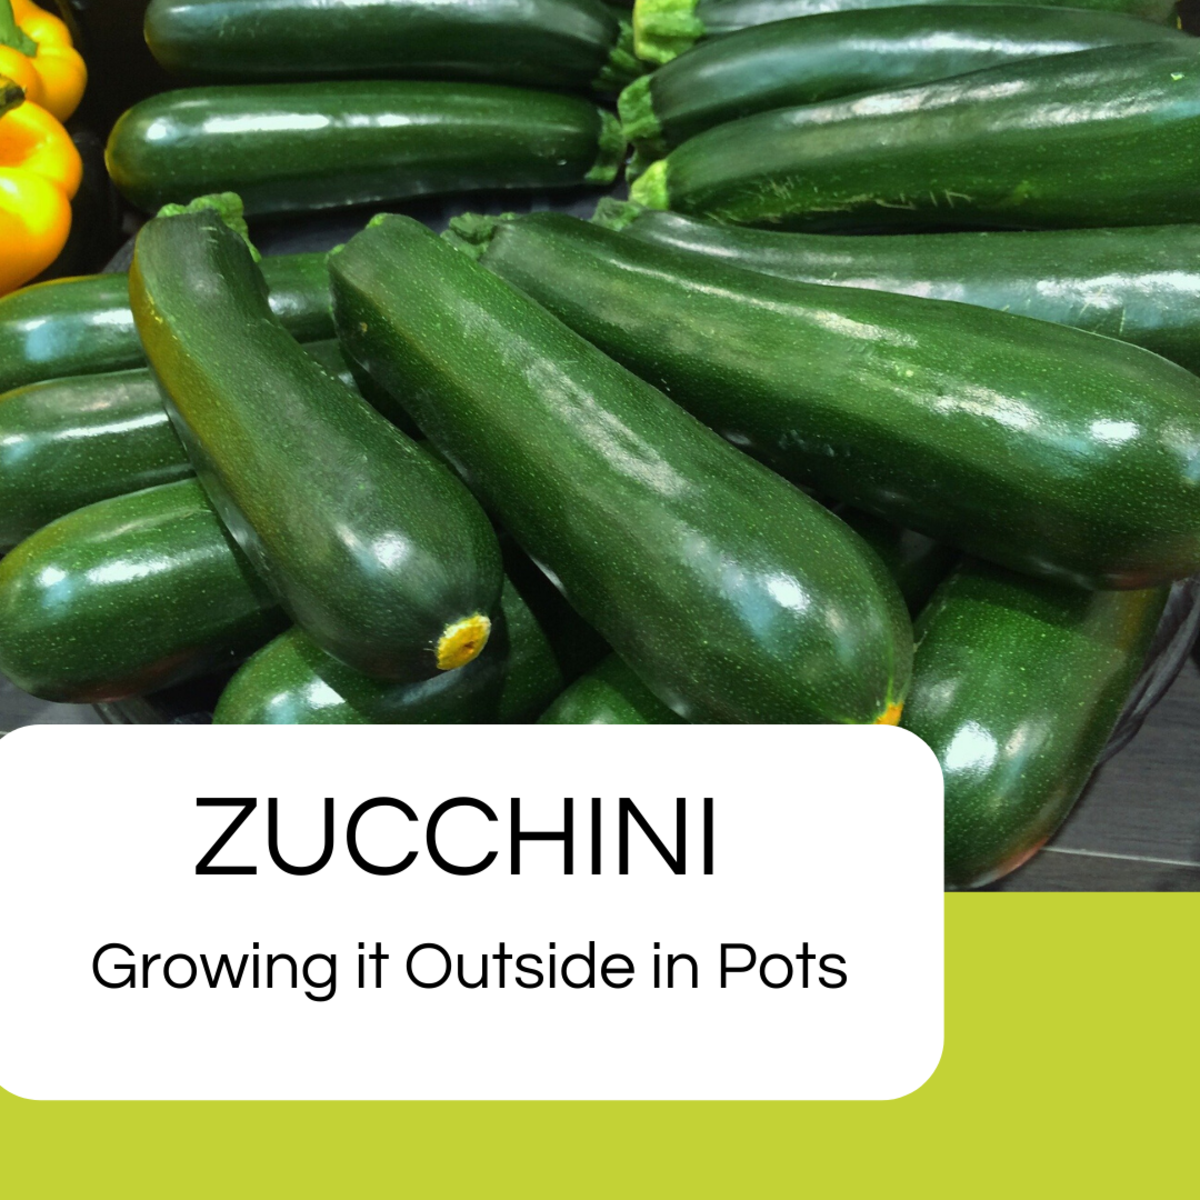 Growing zucchini at home is really easy.